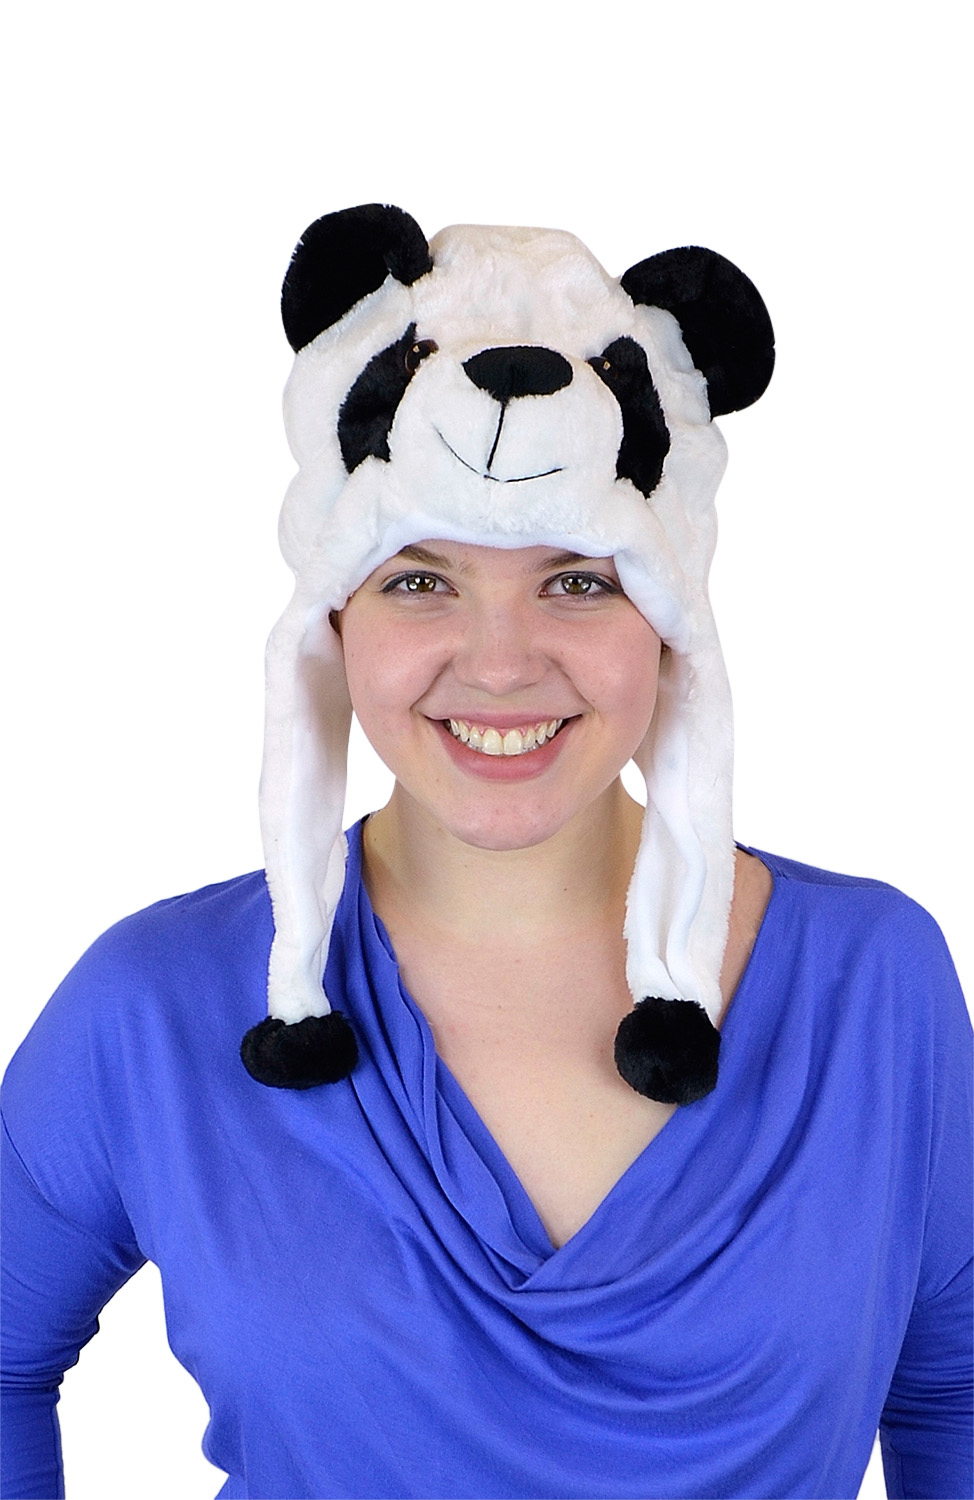 Belle Donne- Unisex Animal Hats Plush Style Pom Pom - Warm Winter Hats - Panda